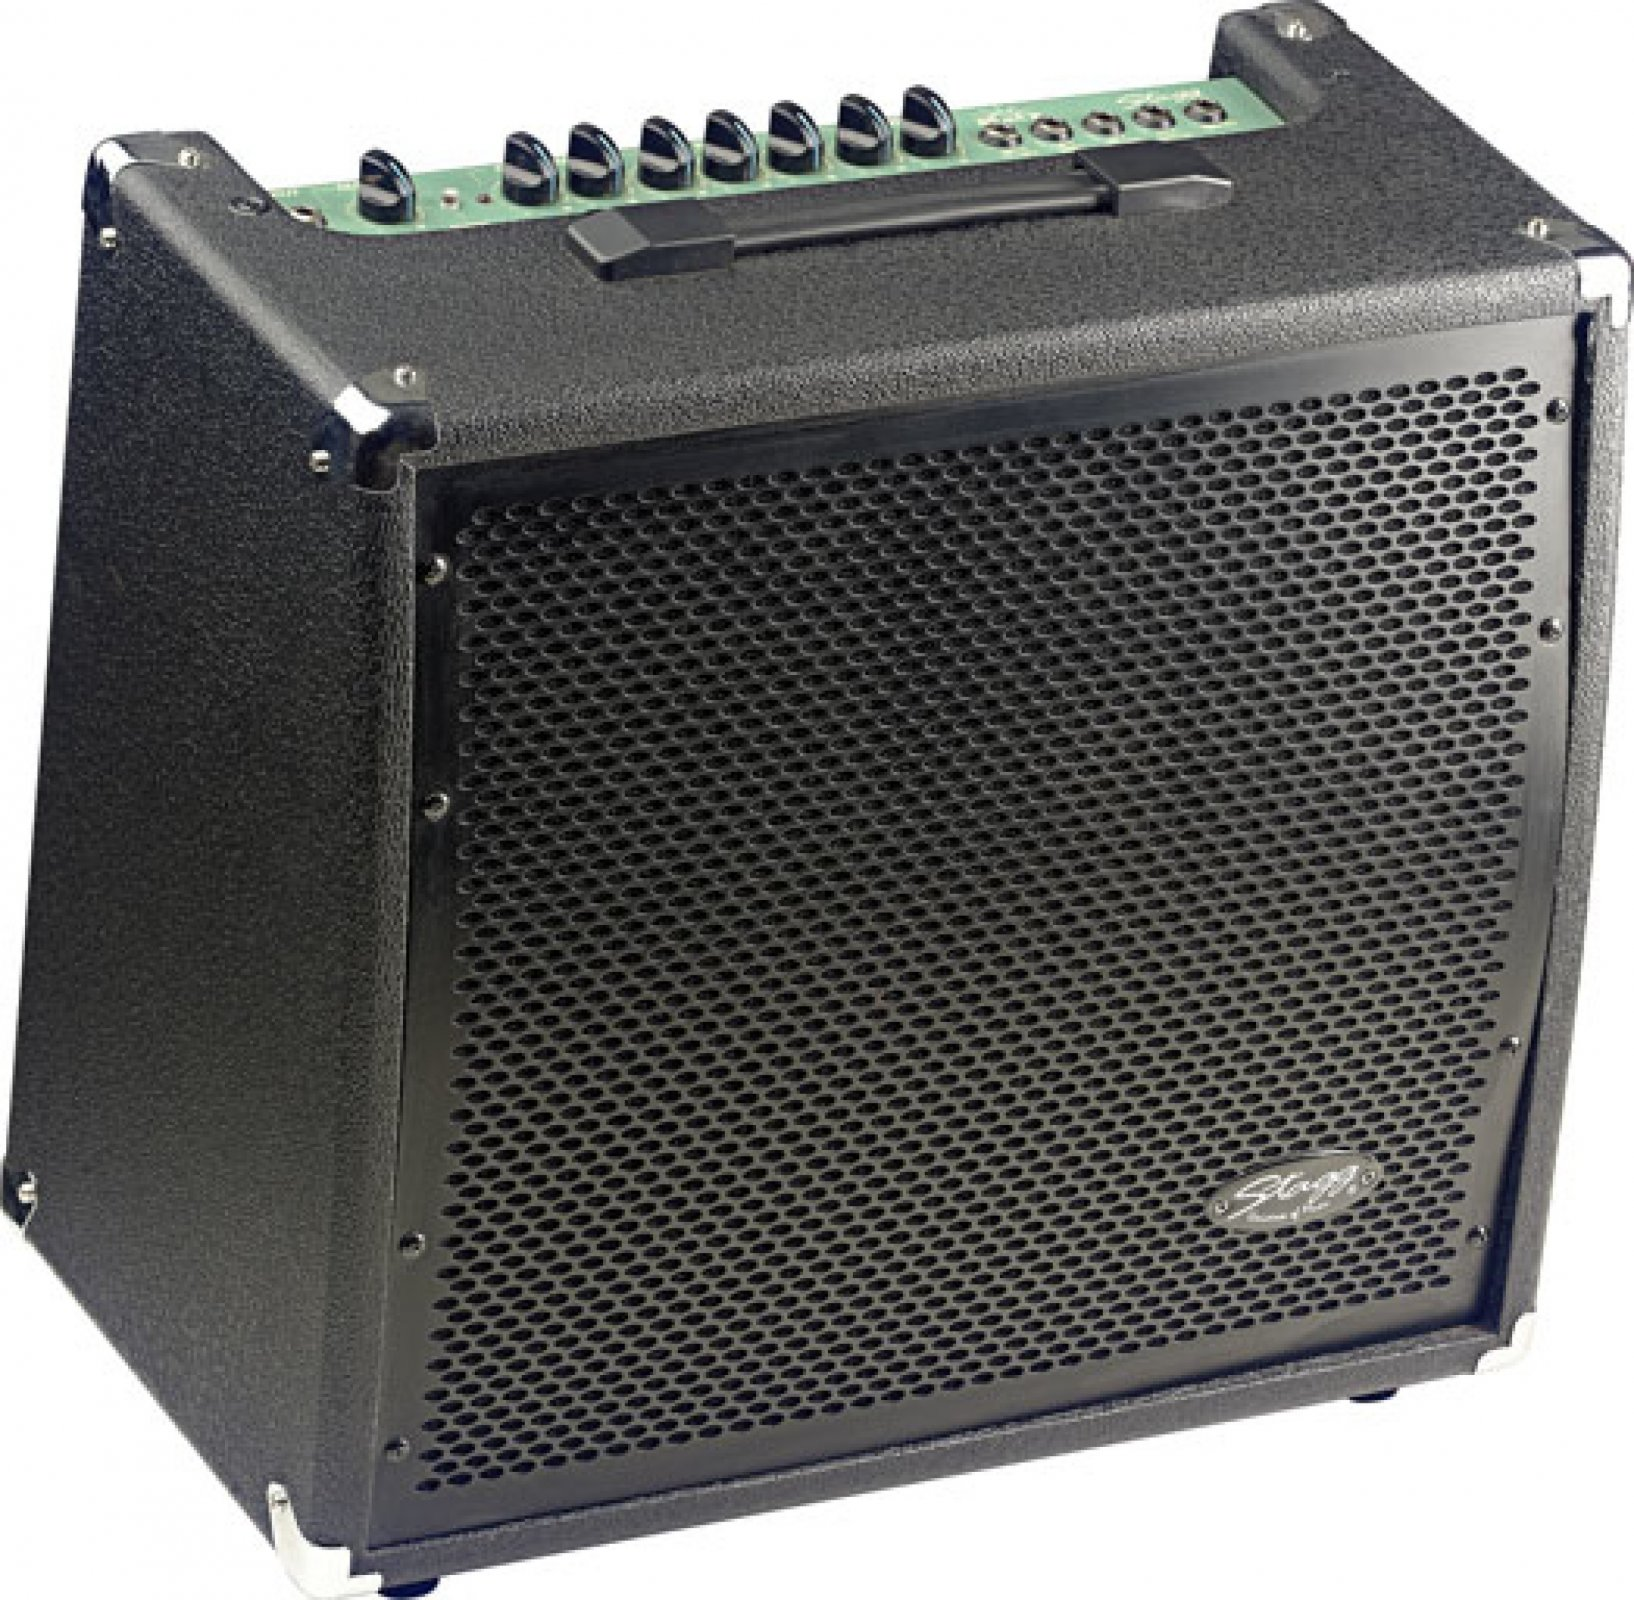 Stagg 60 GA DSP Amplifier